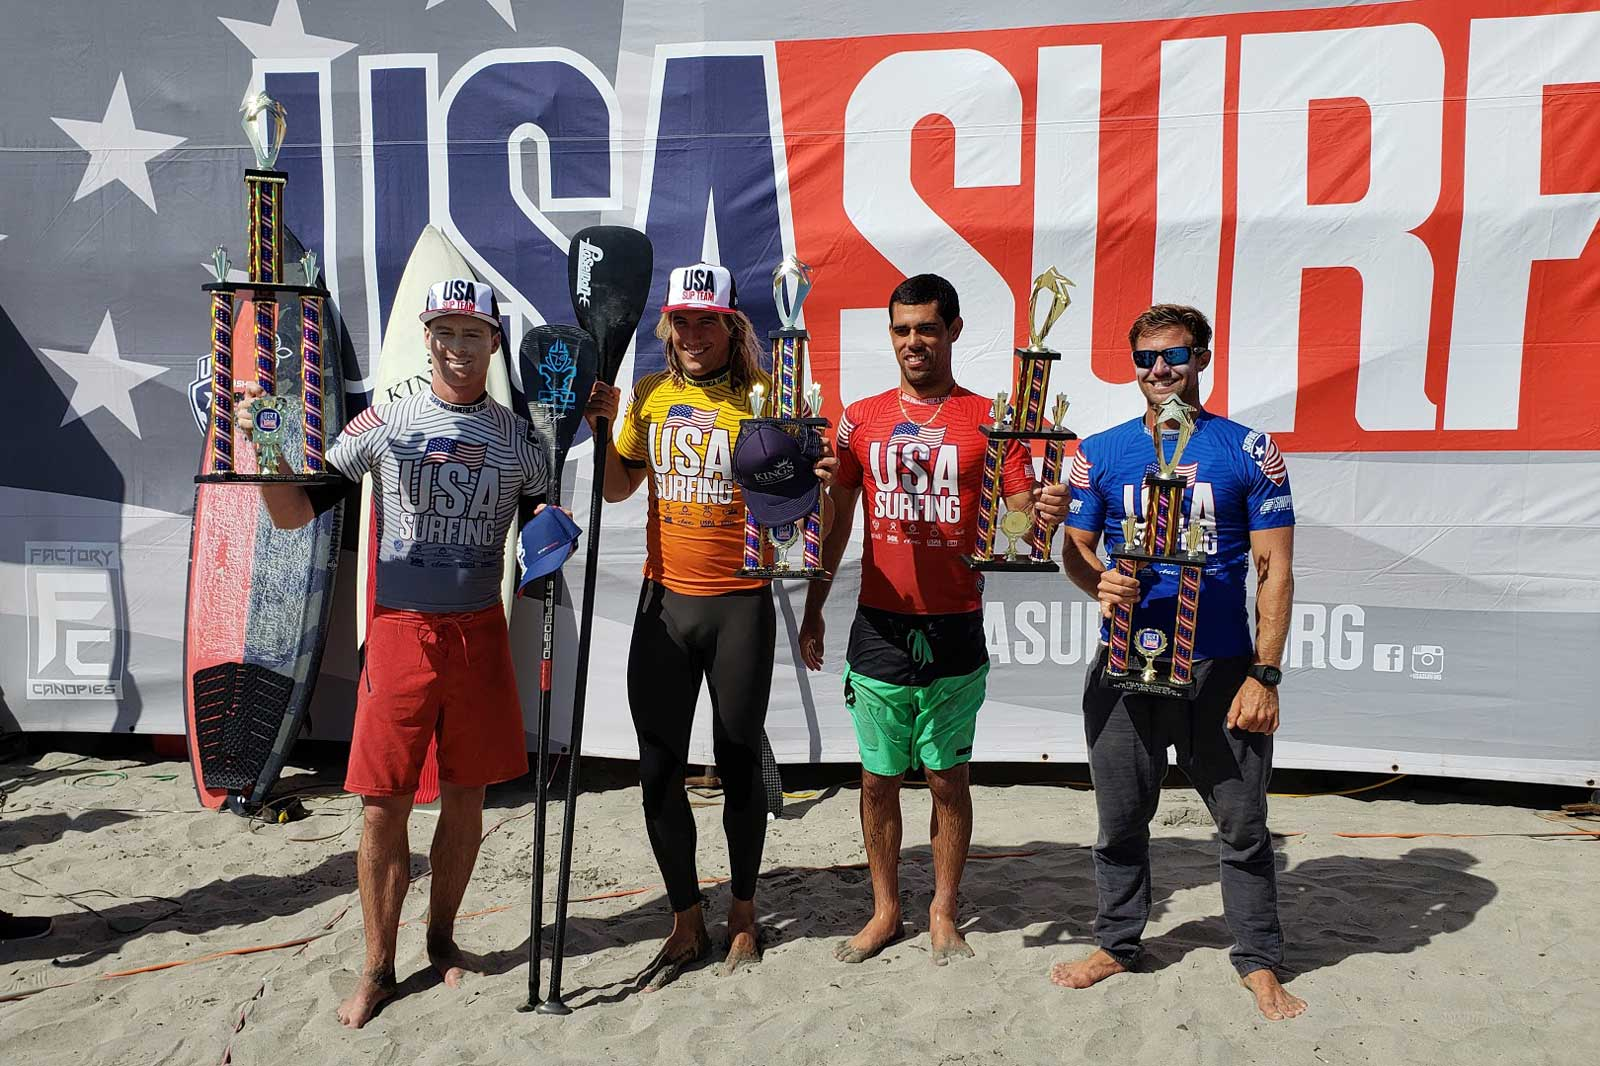 starboard-sup-sean-poynter-2018-USA-SUP-Surfing-Championships-Oceanside-Harbor-podium-1